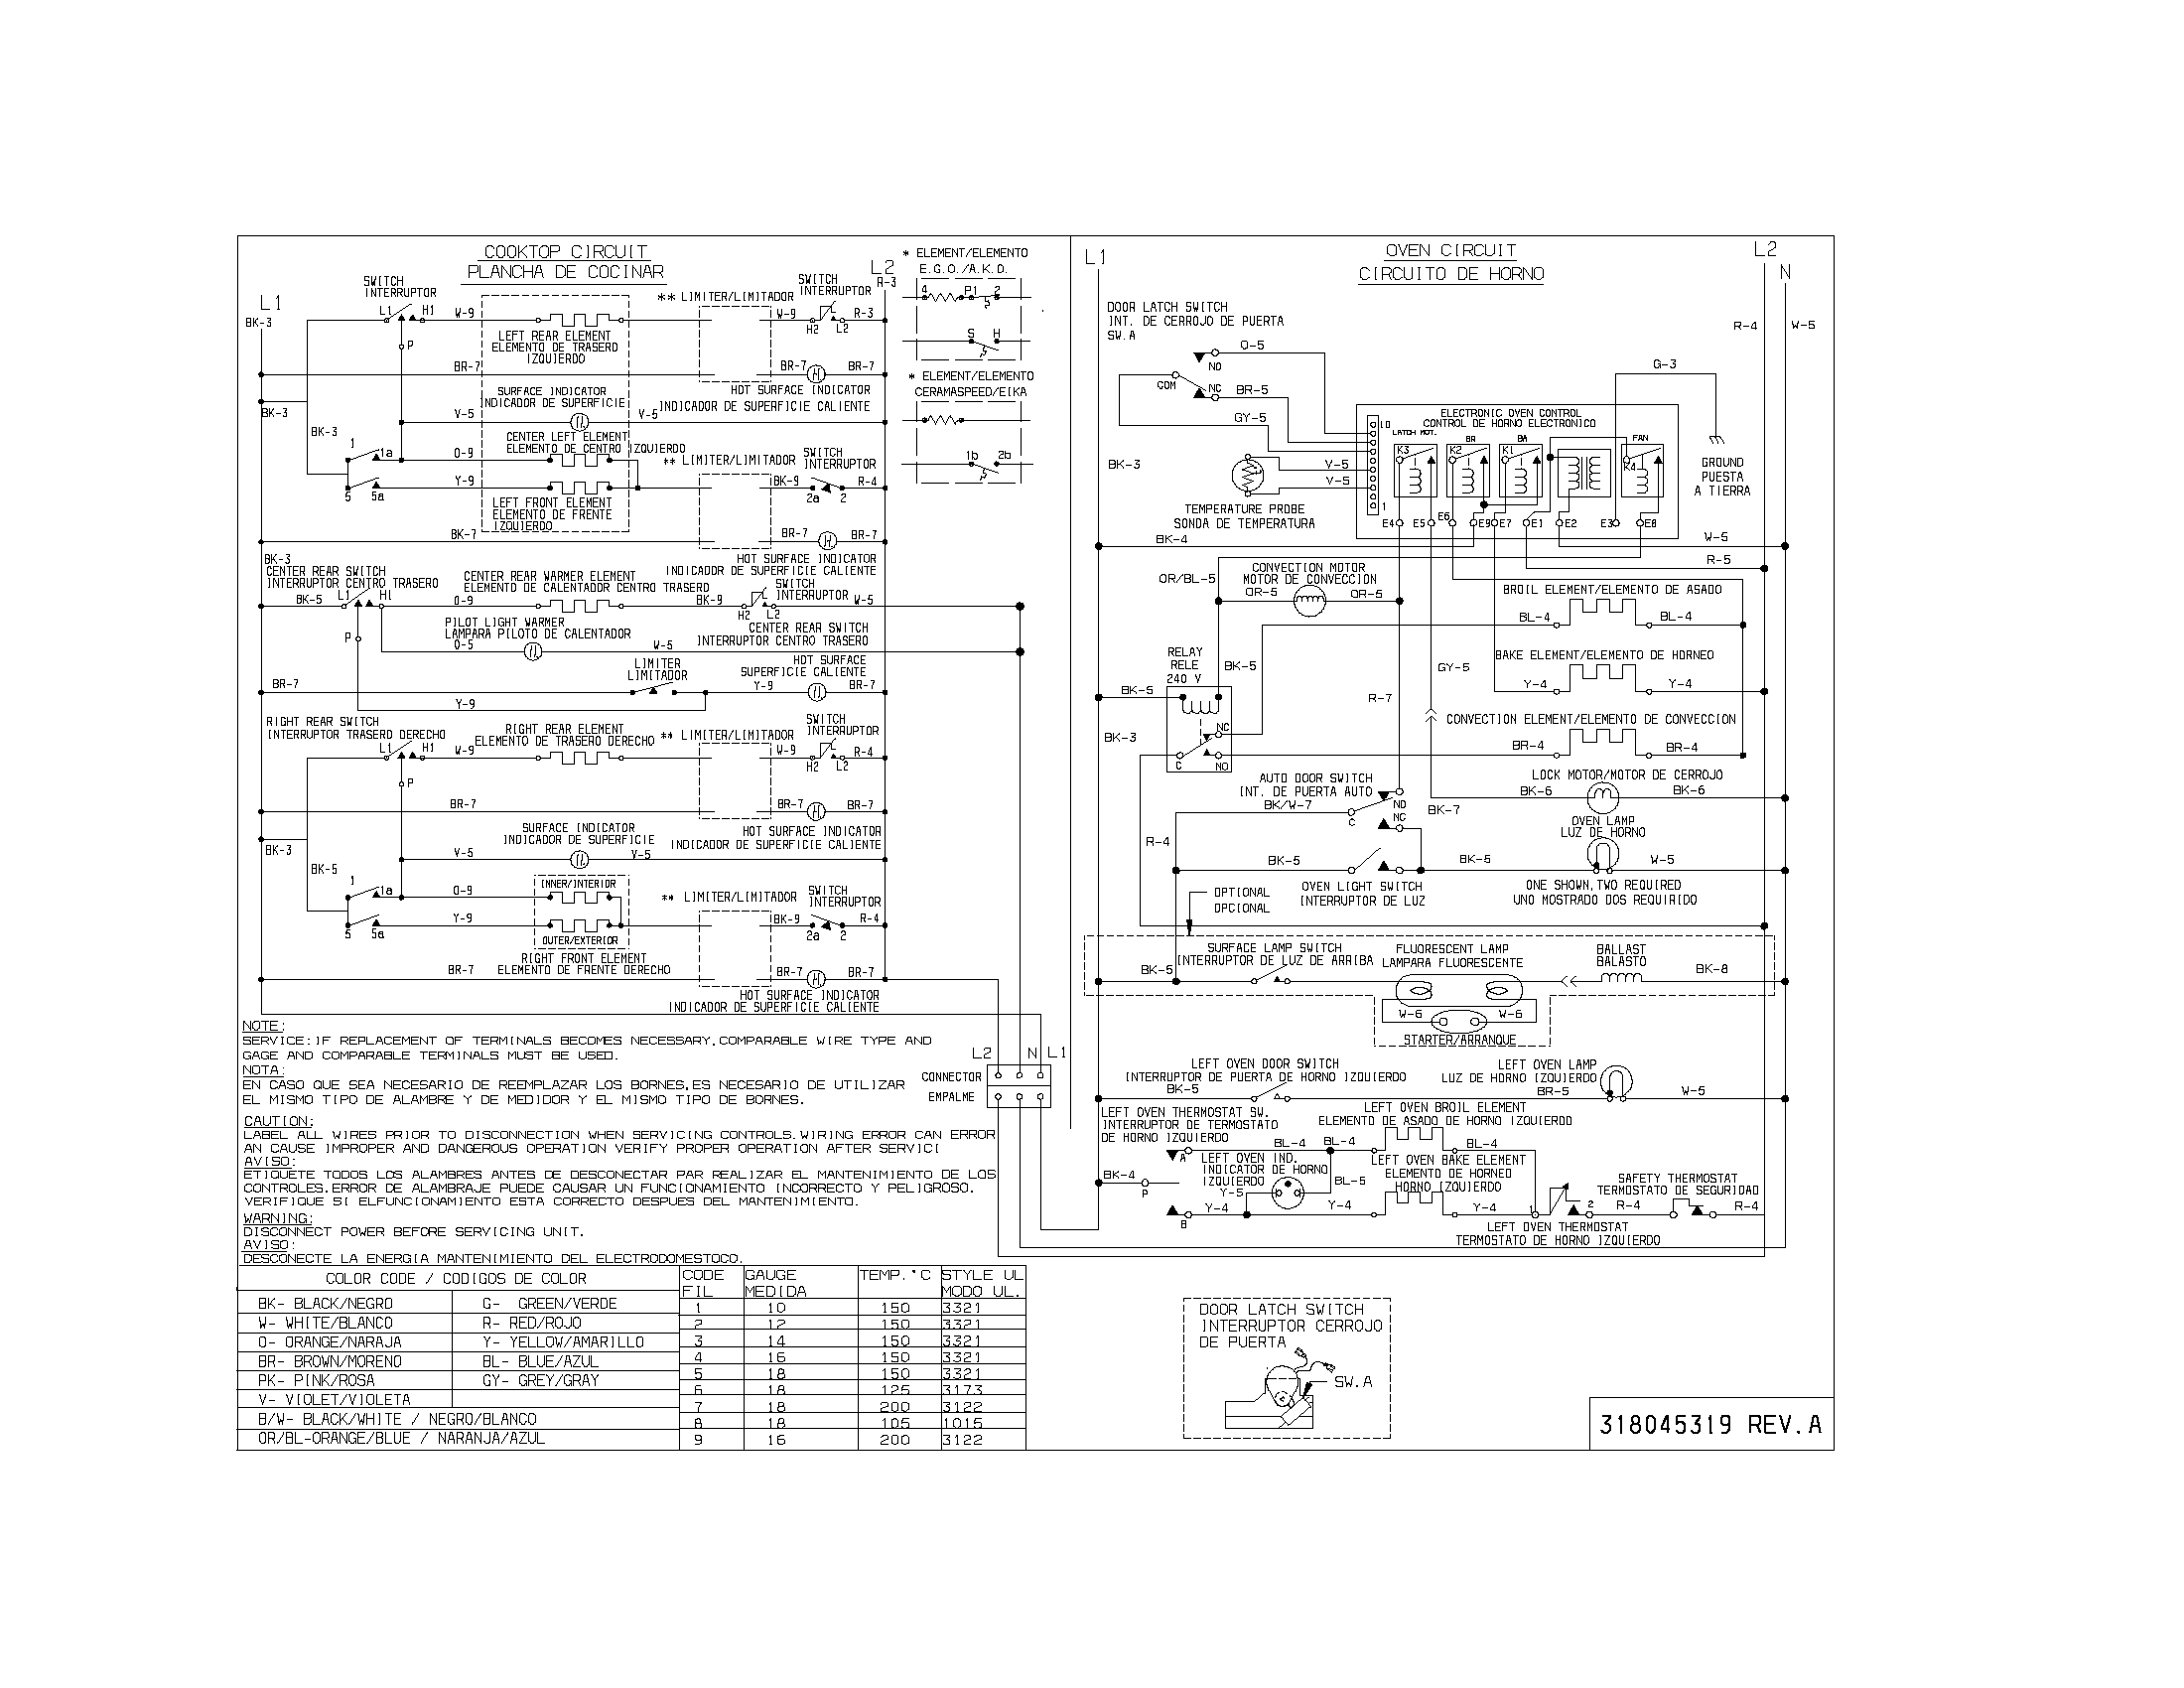 wiring diagram parts?resized665%2C5146ssld1 kic fridge thermostat wiring diagram efcaviation com kic fridge thermostat wiring diagram at reclaimingppi.co